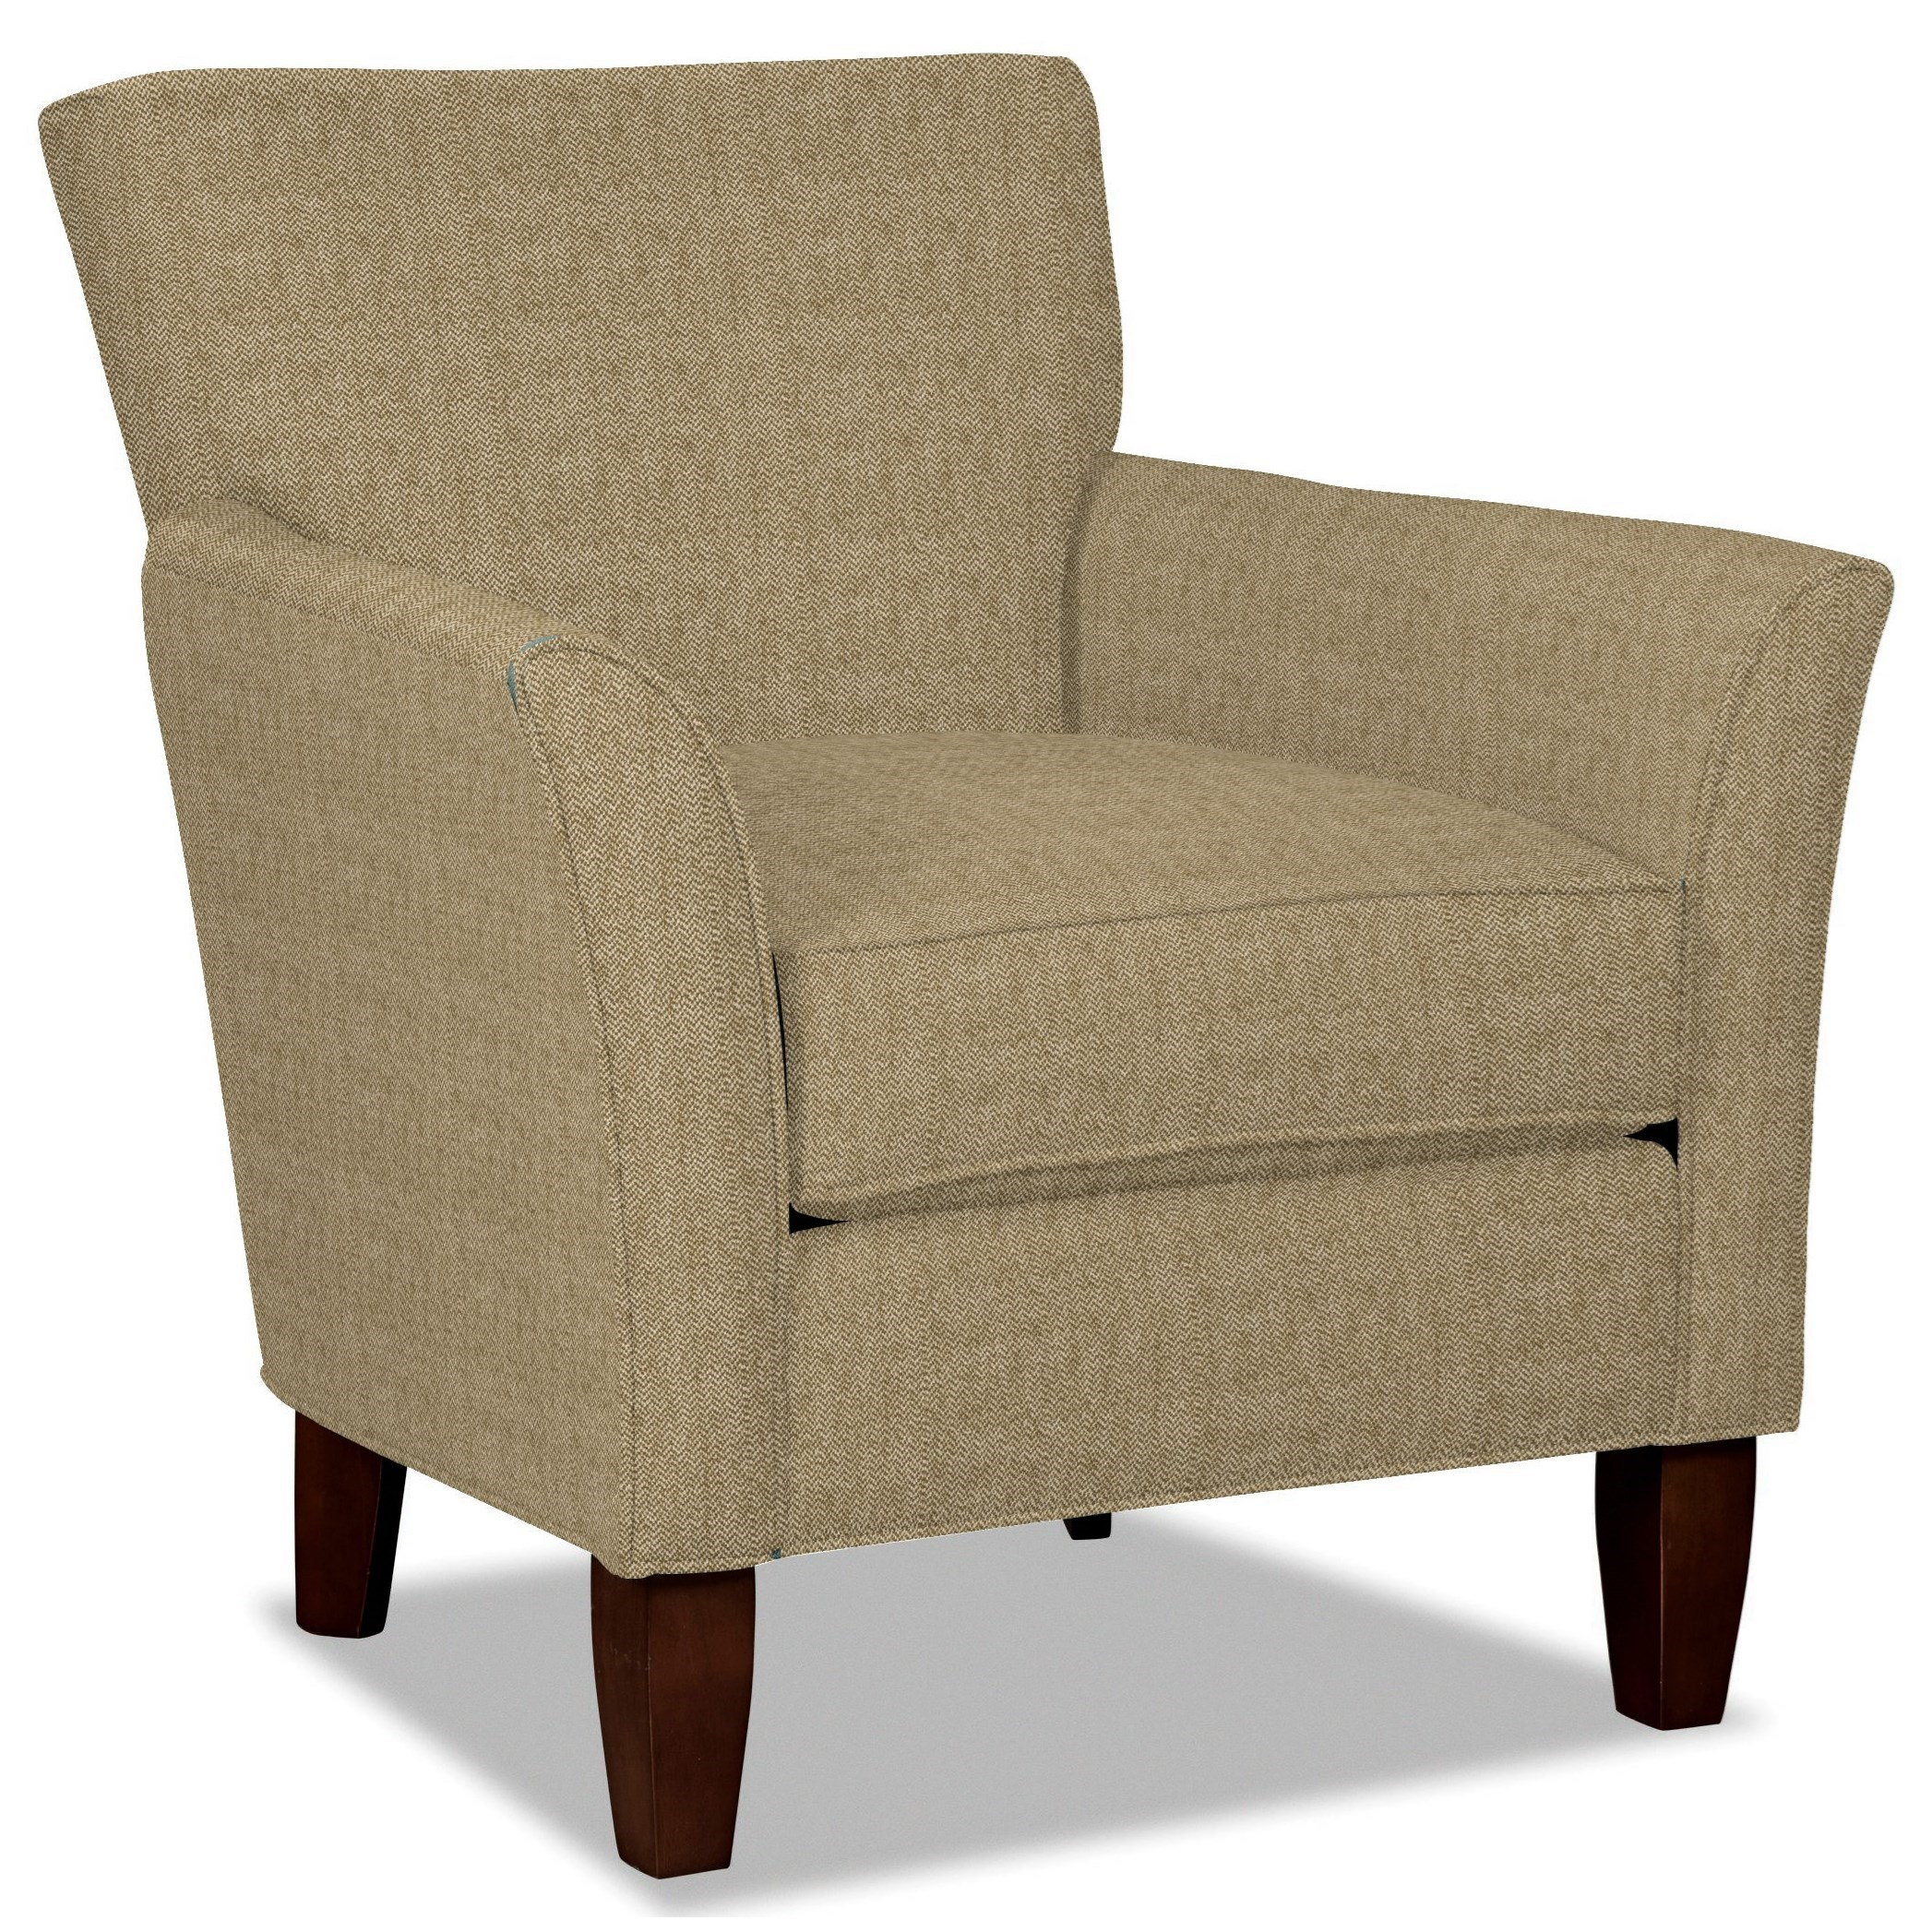 Craftmaster 060110 Accent Chair - Item Number: 060110-CONVOY-10